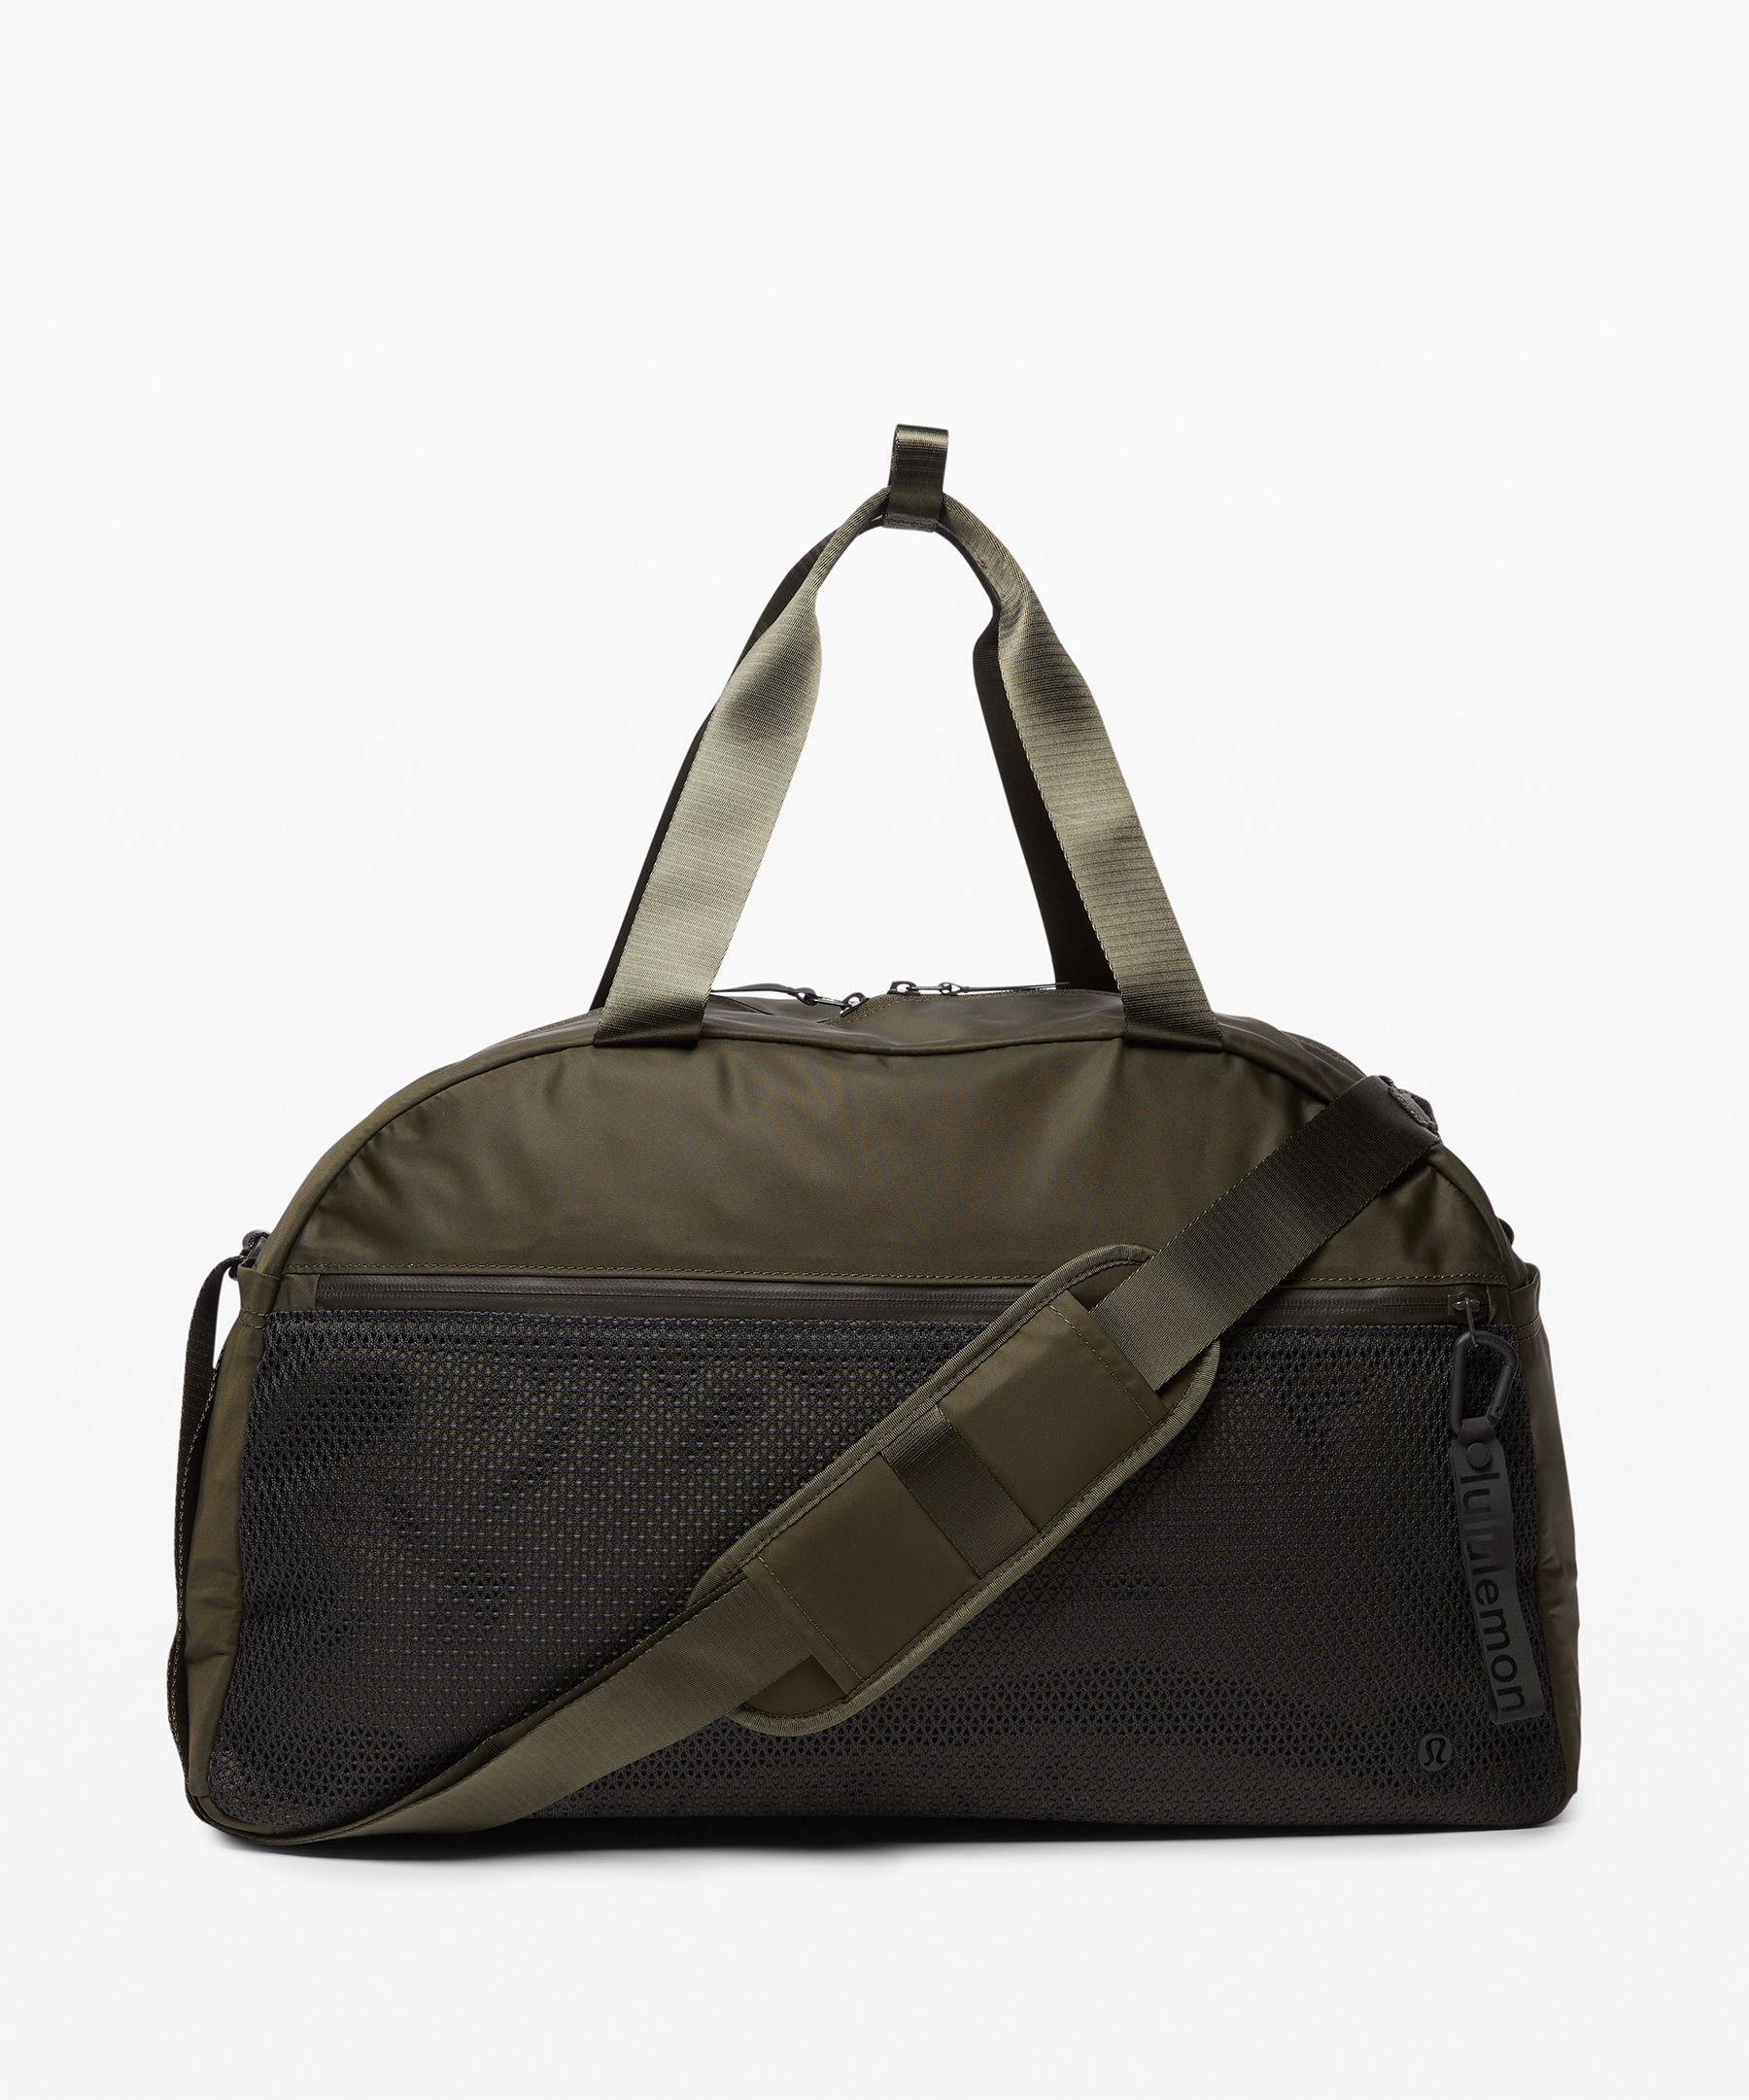 Feel more than prepared as you  go from class to the gym to  the library with everything  you need in tow in this  campus-ready duffel. The best  part: it features a  double-padded shoulder strap  for those days when you packed  maybe a bit too much.